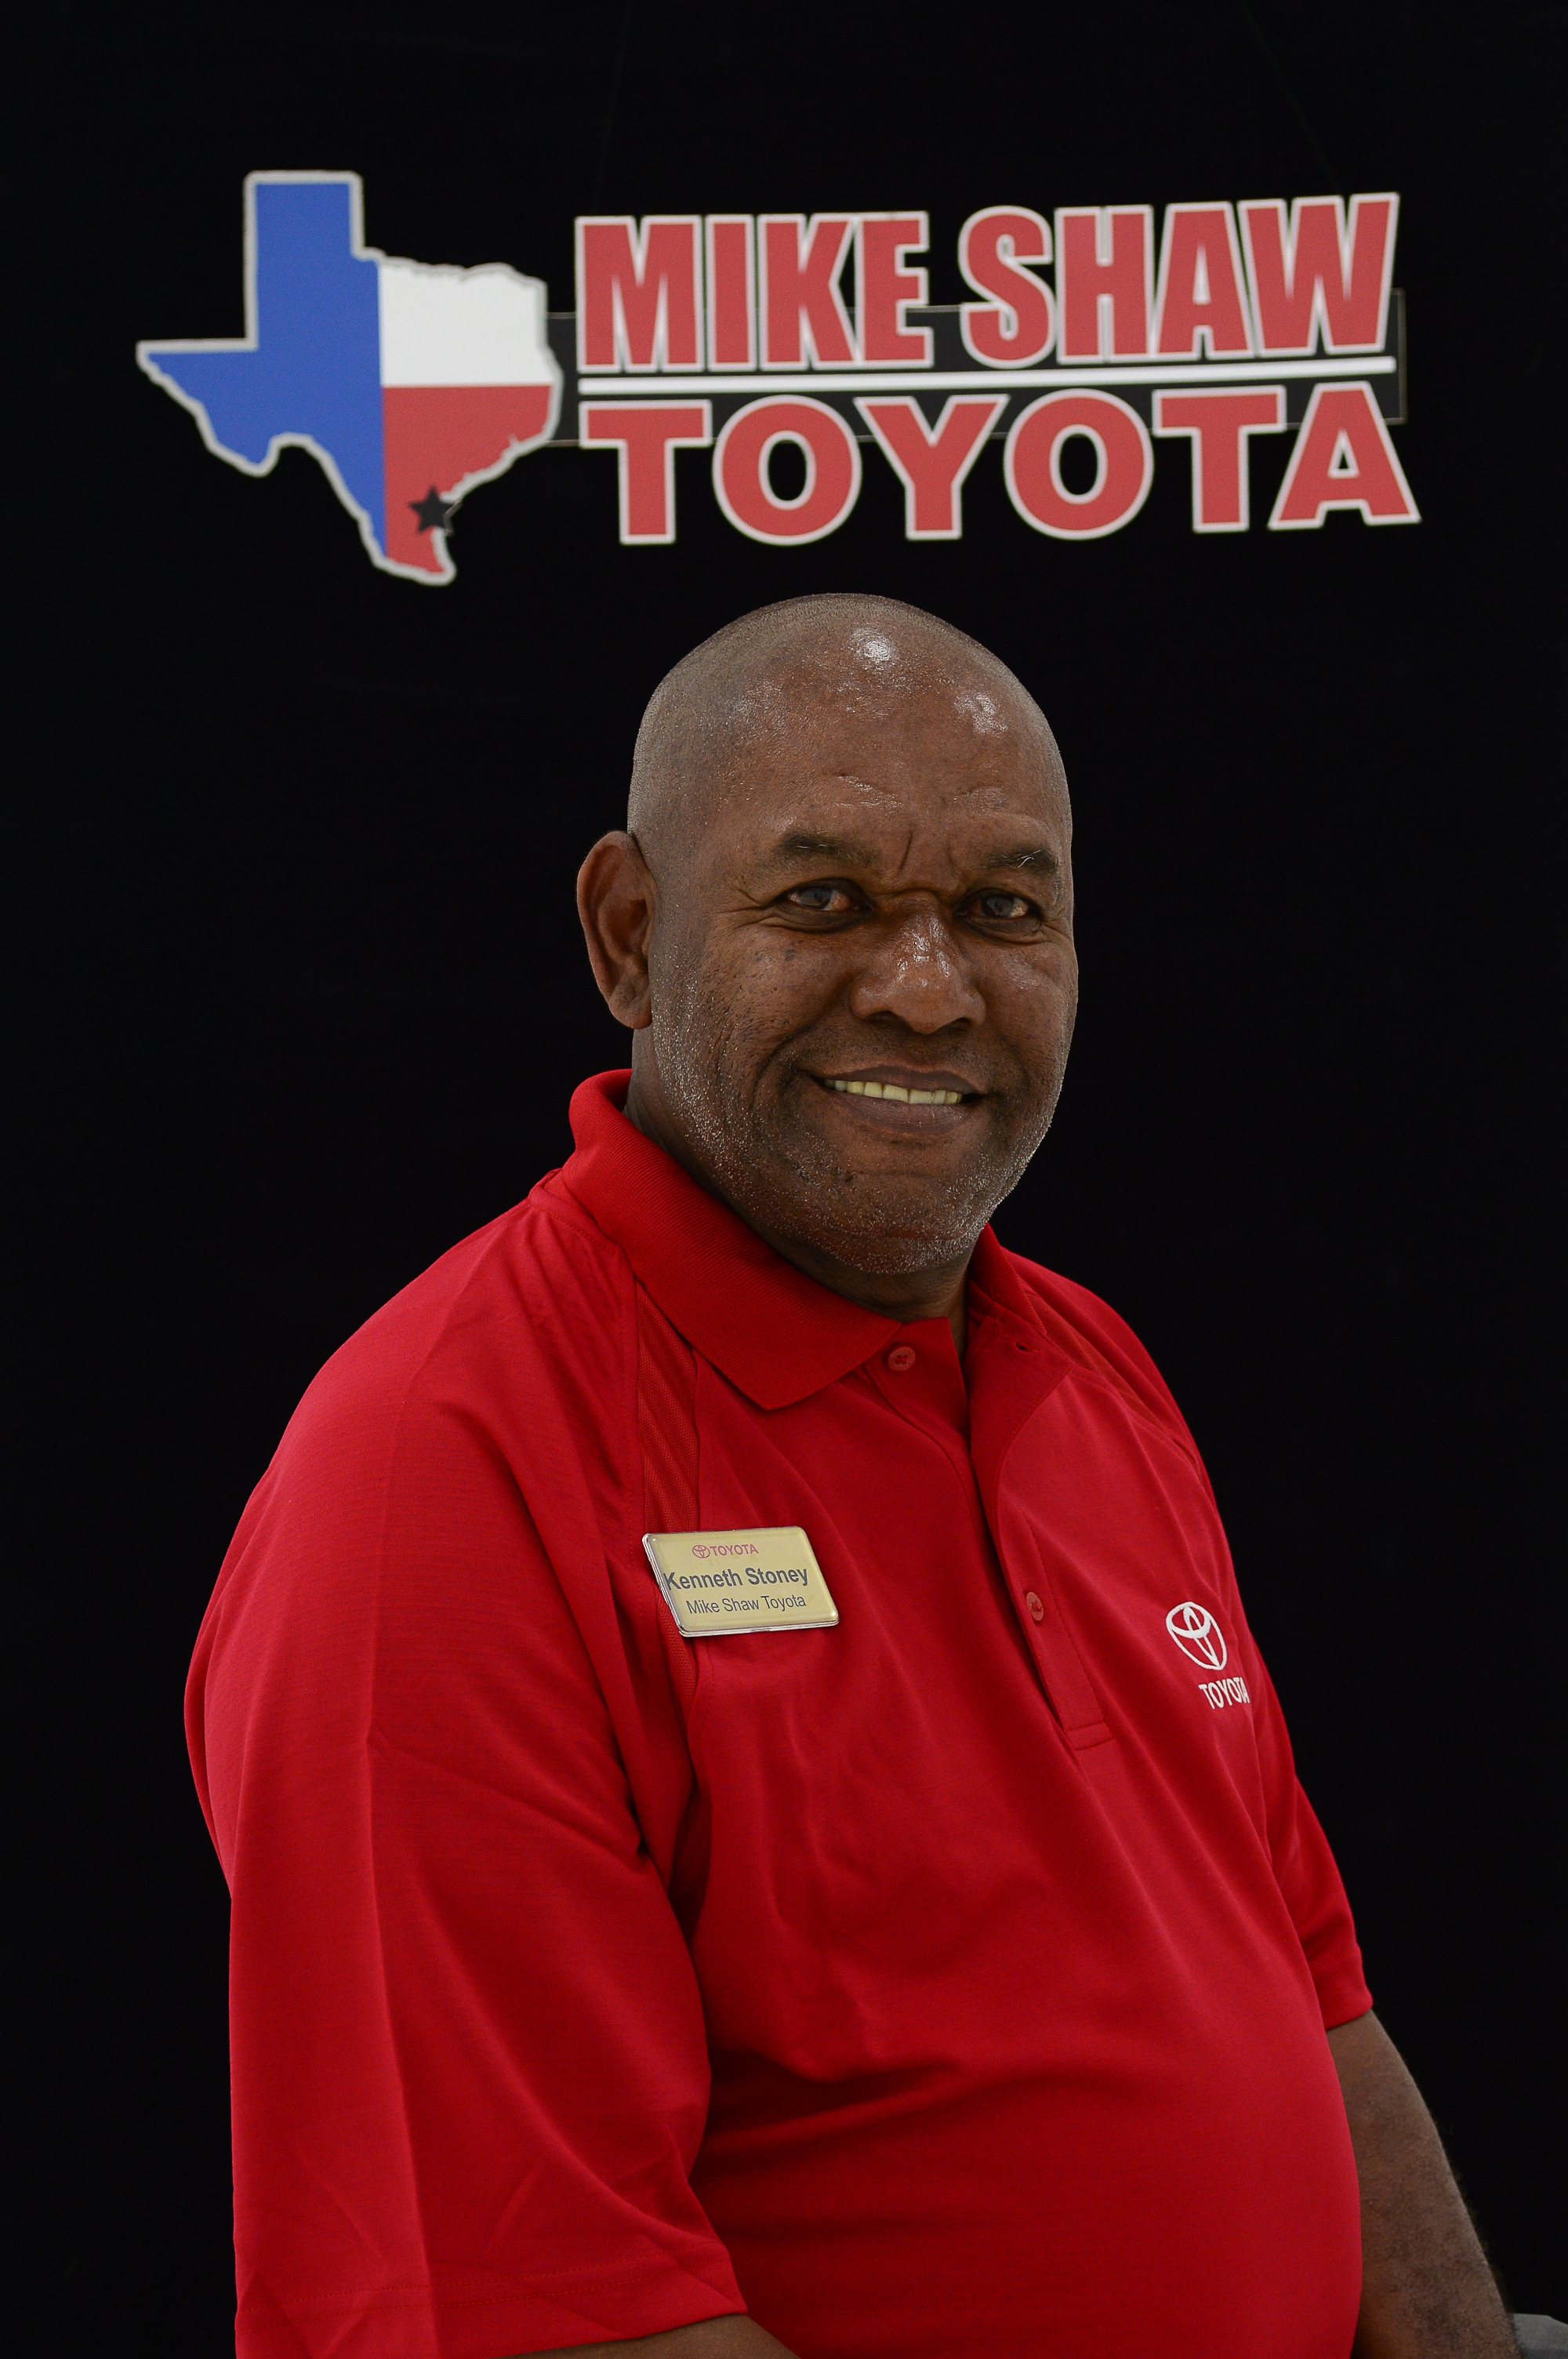 mike shaw toyota new toyota dealership in robstown tx